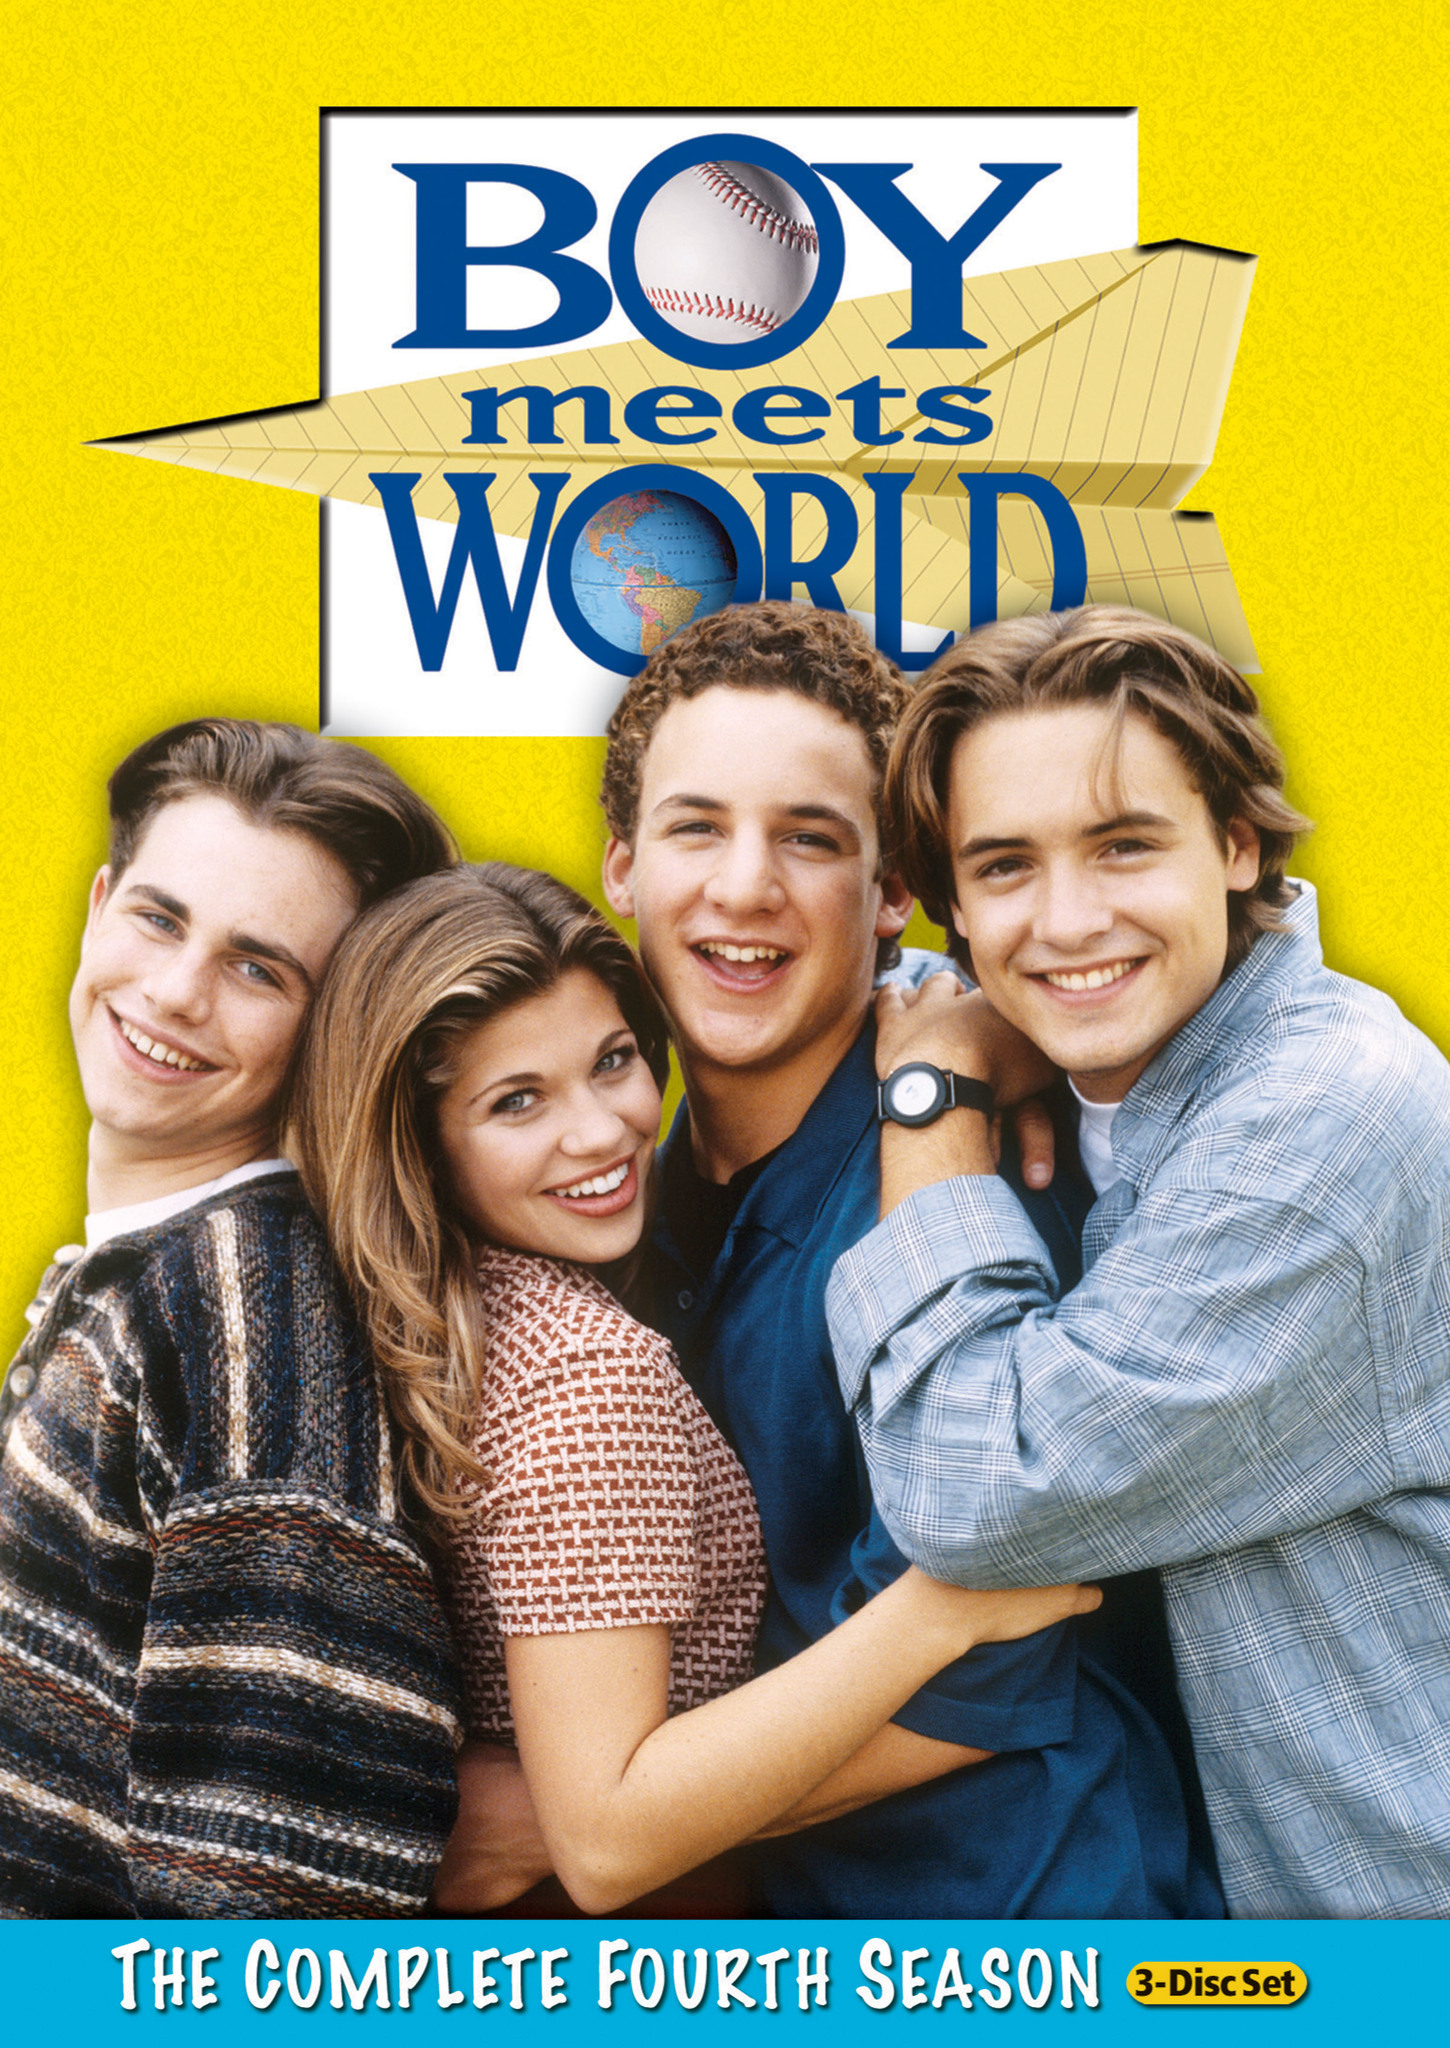 Girl meets world season 1 episode 1 online